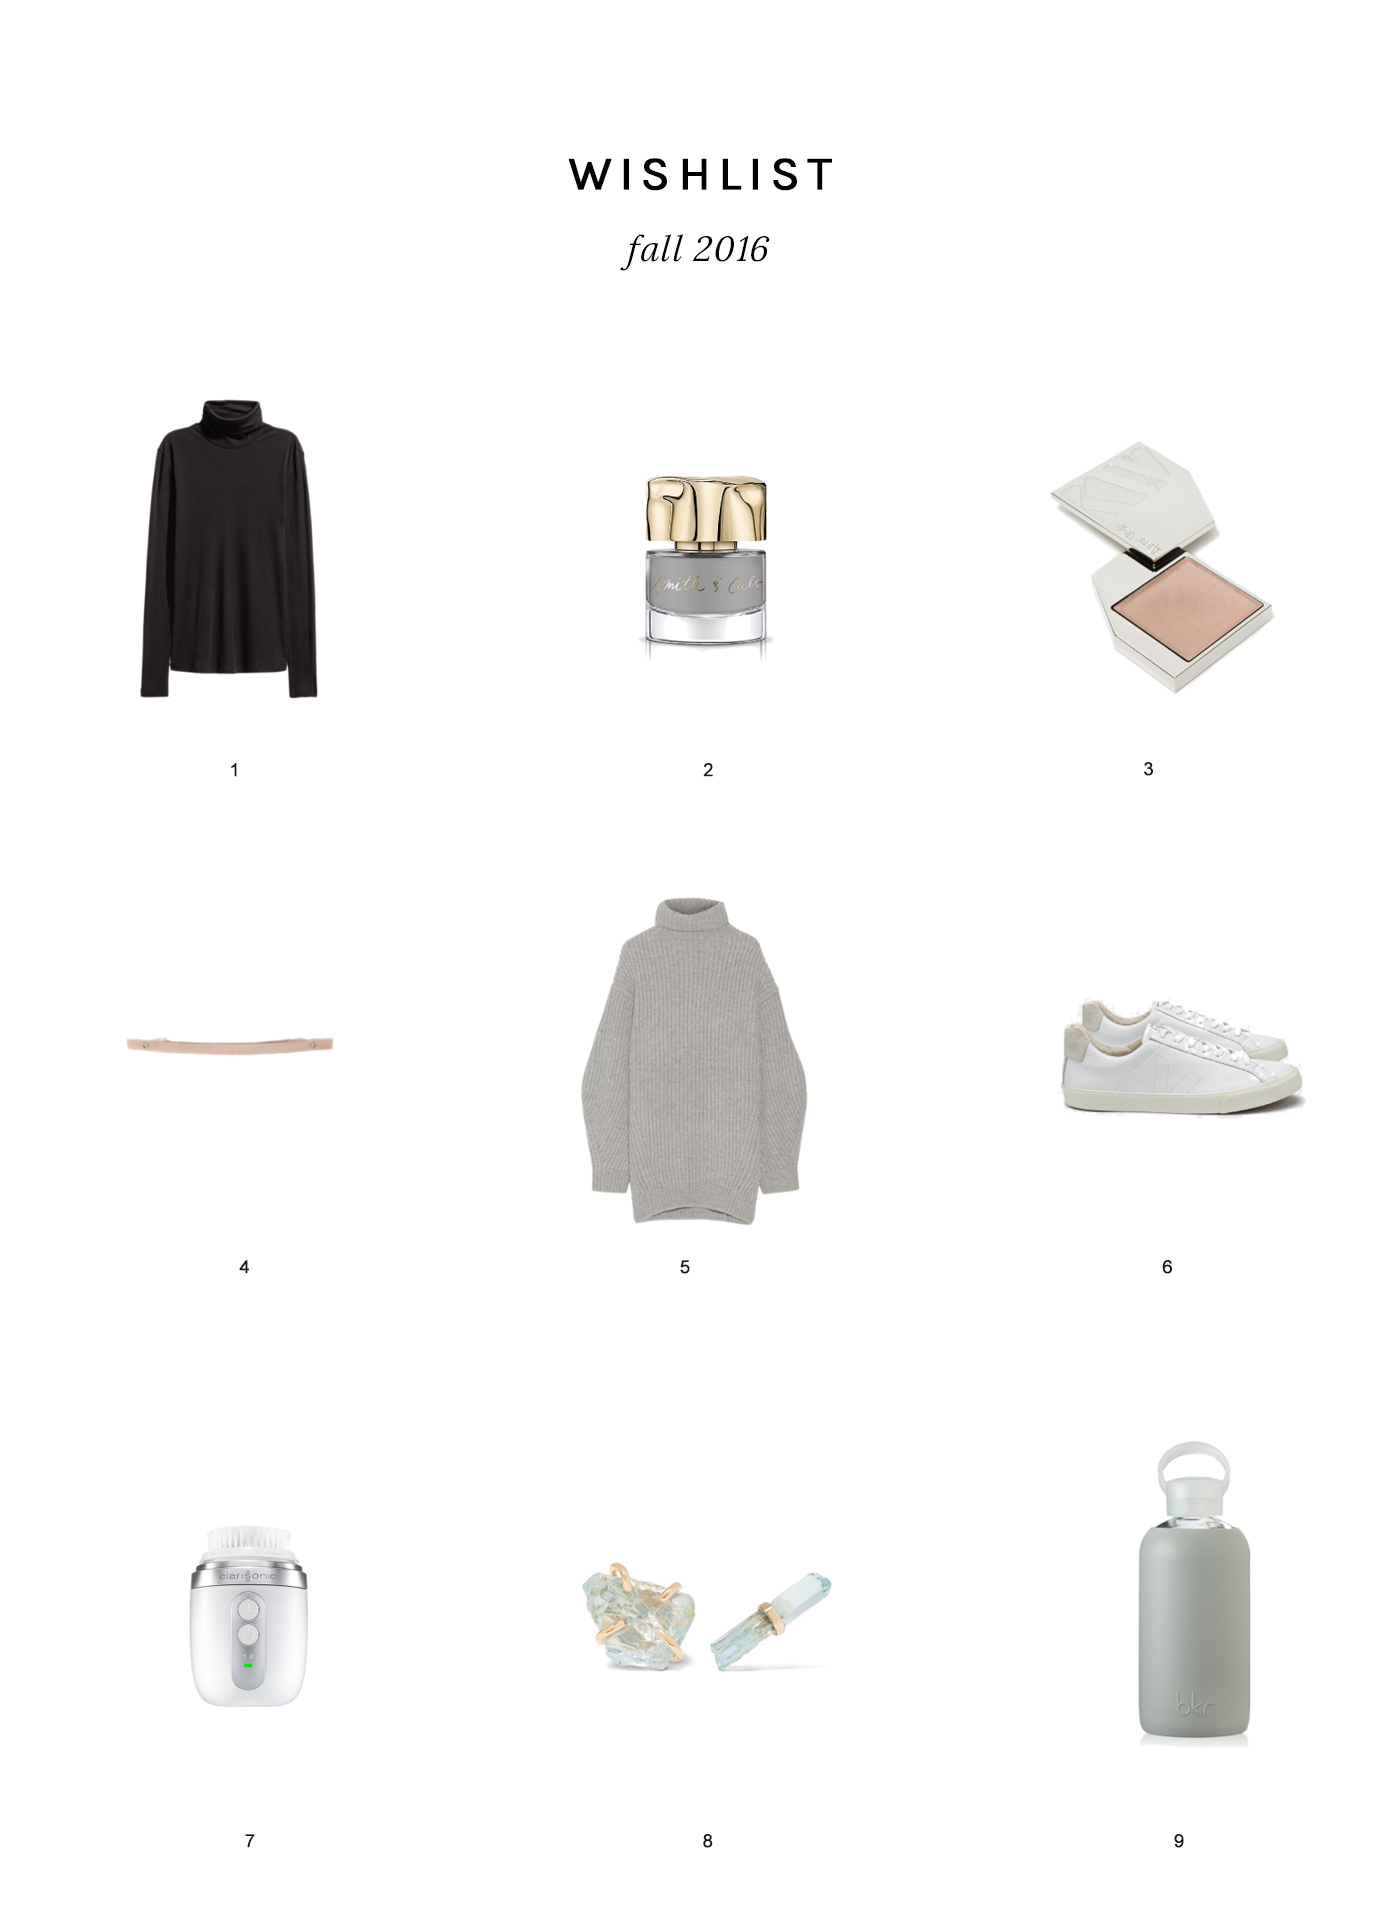 My Fall 2016 wishlist, featuring Flannery, Smith & Cult, Kjær Weis, Sylvain Le Hen, Acne Studios, Veja, Clarisonic, Melissa Joy Manning & bkr.